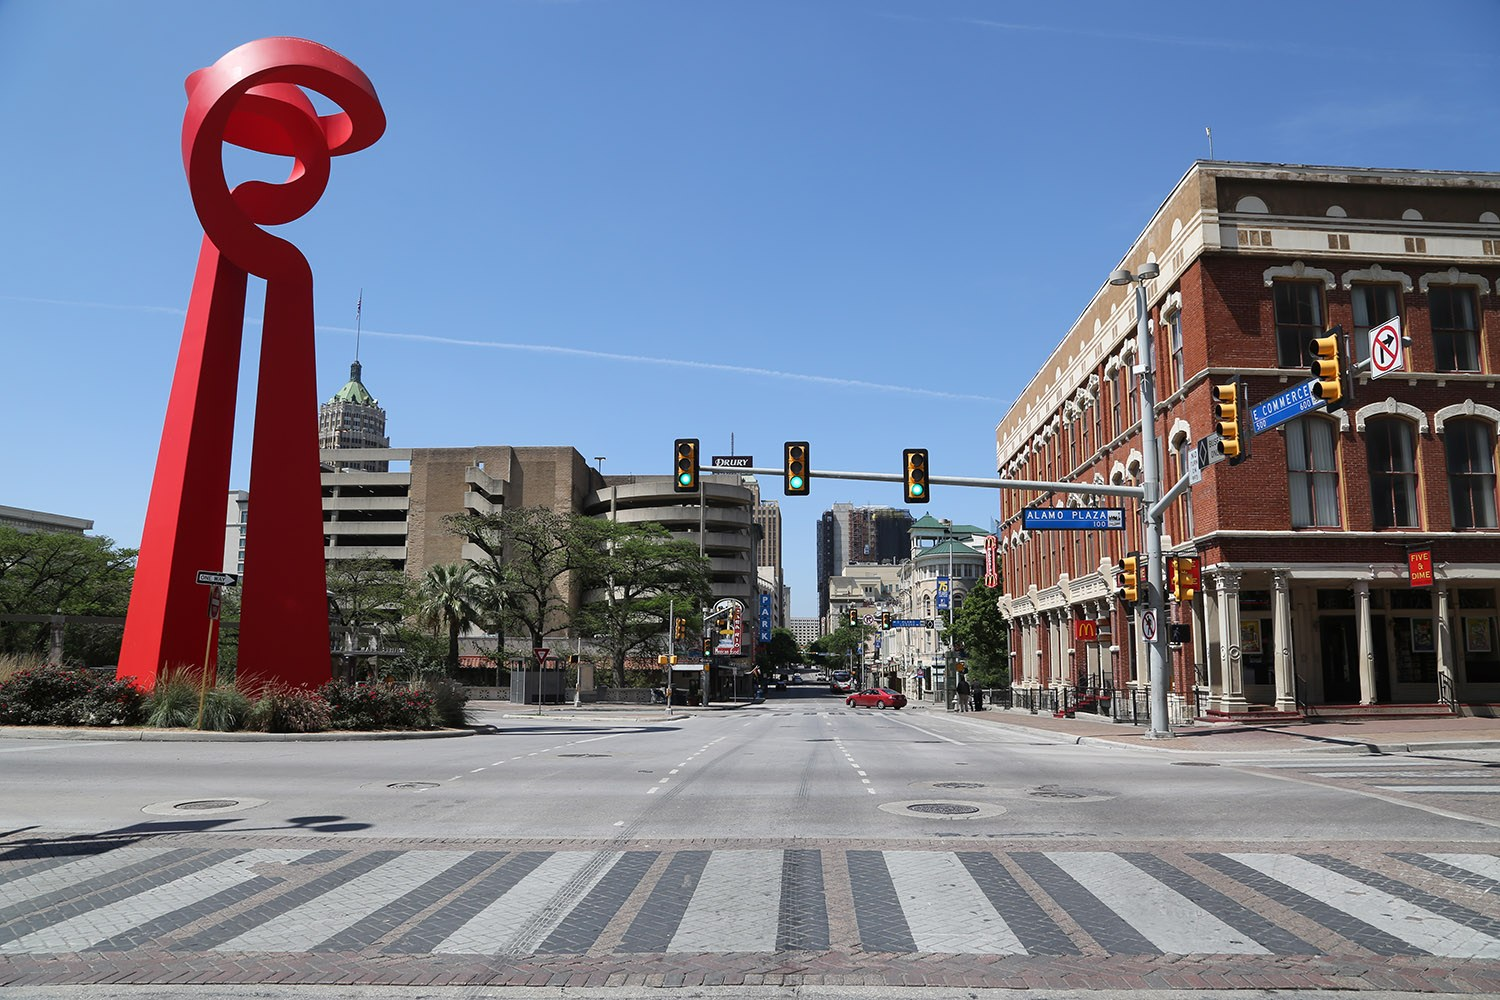 Commerce Street is nearly empty amid coronavirus on Tuesday, March 24, 2020. <b><em>Photo by Ben Olivo | Heron contributor</em></b>